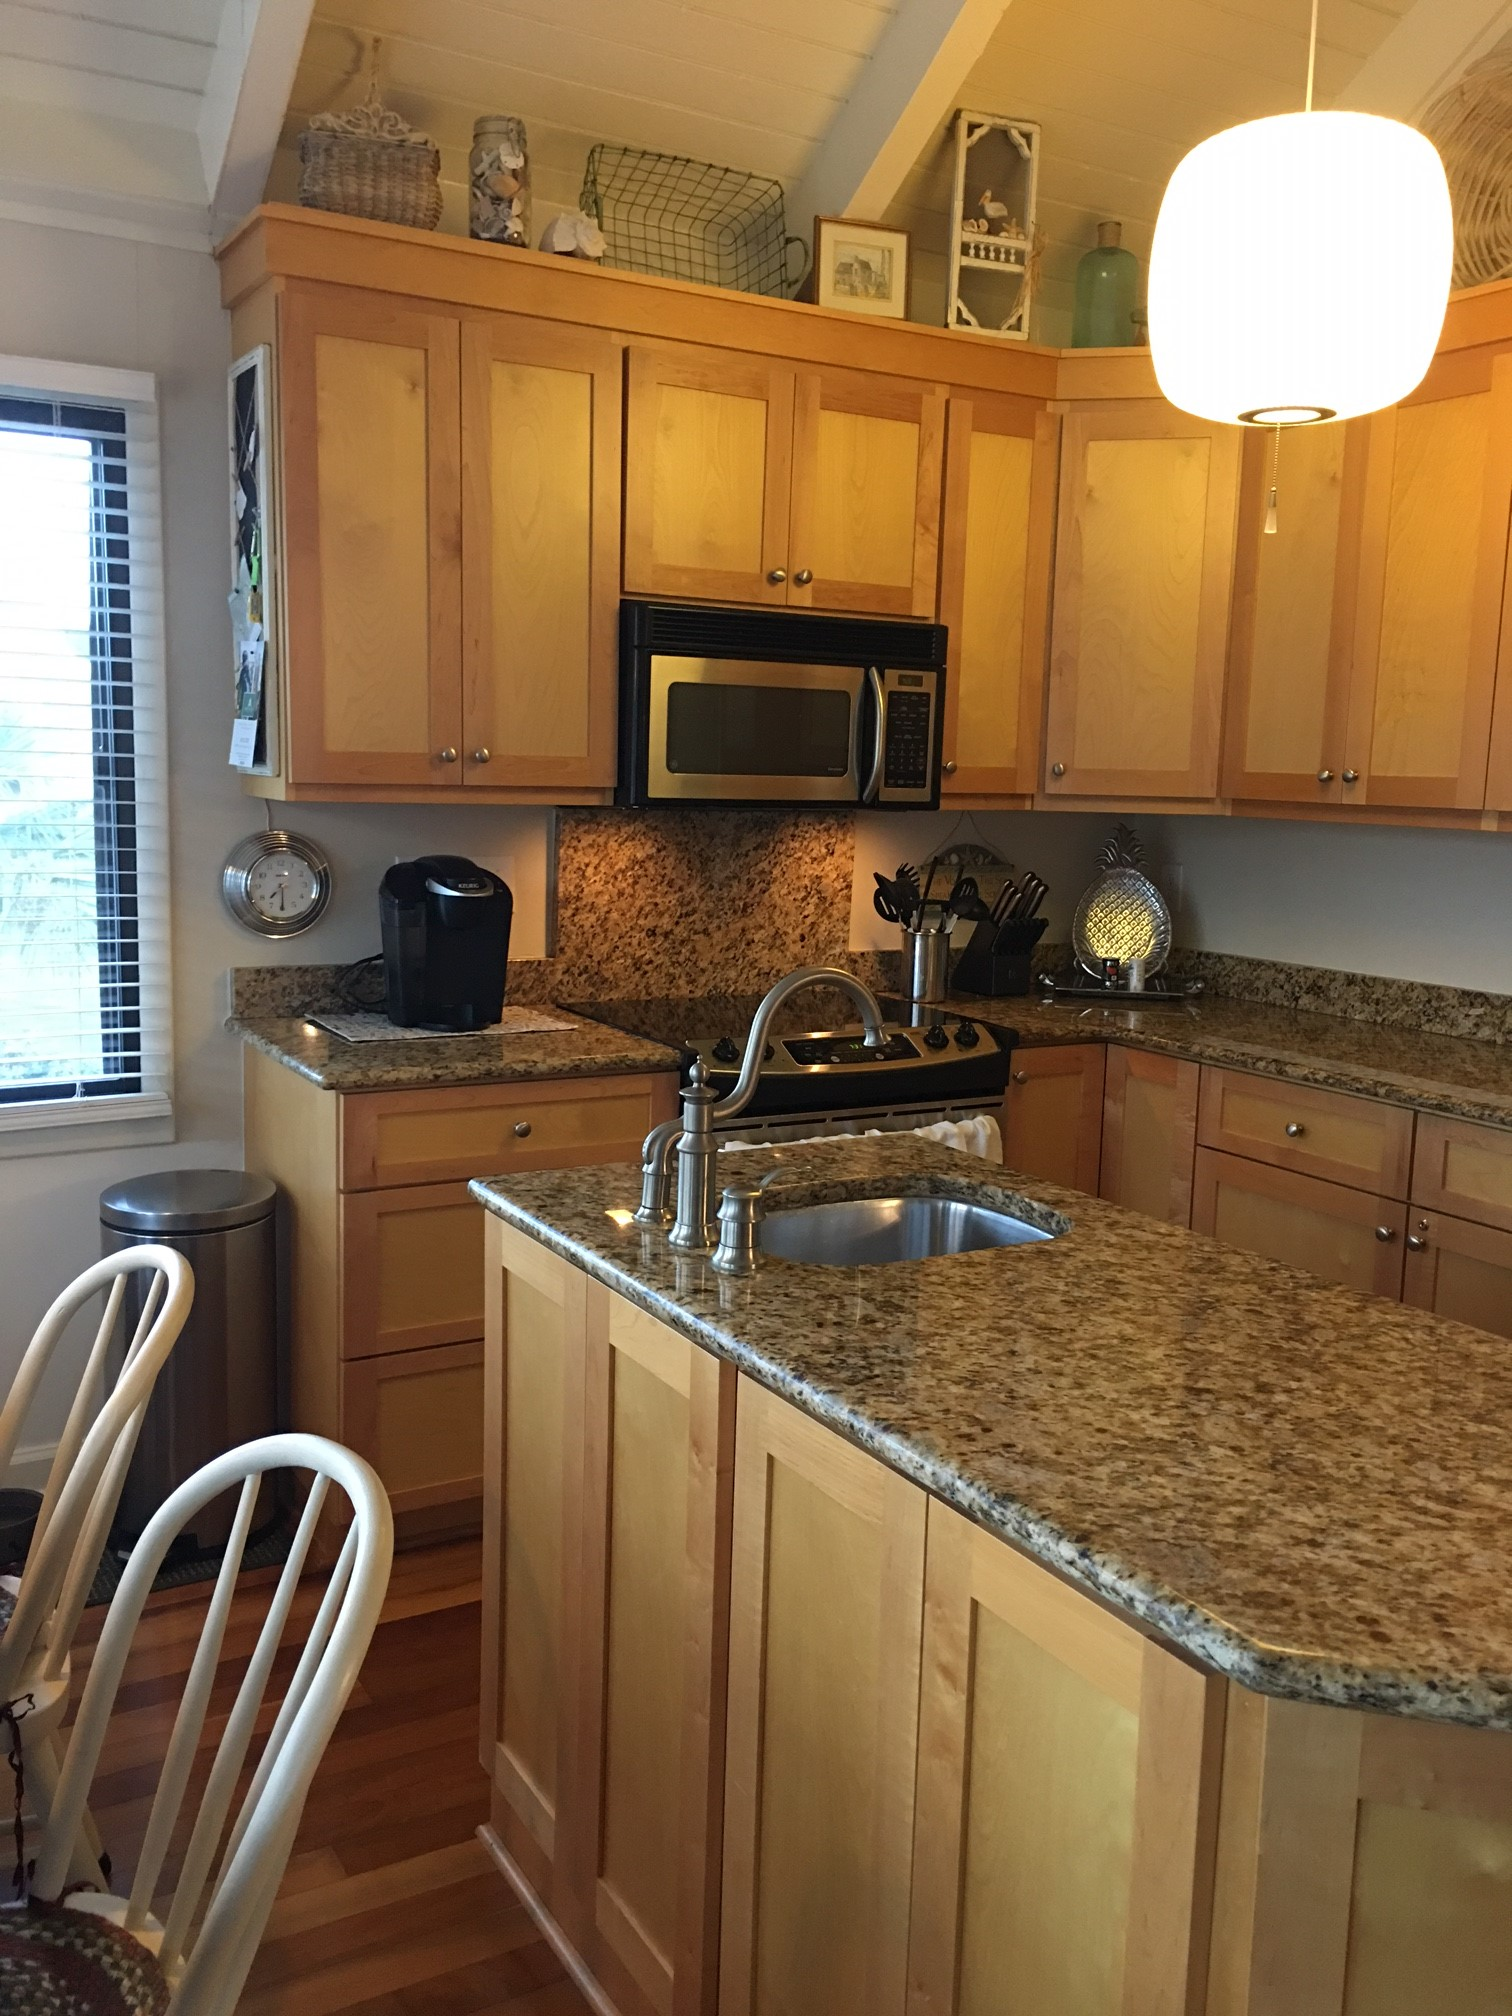 Enjoy the well equipped kitchen.